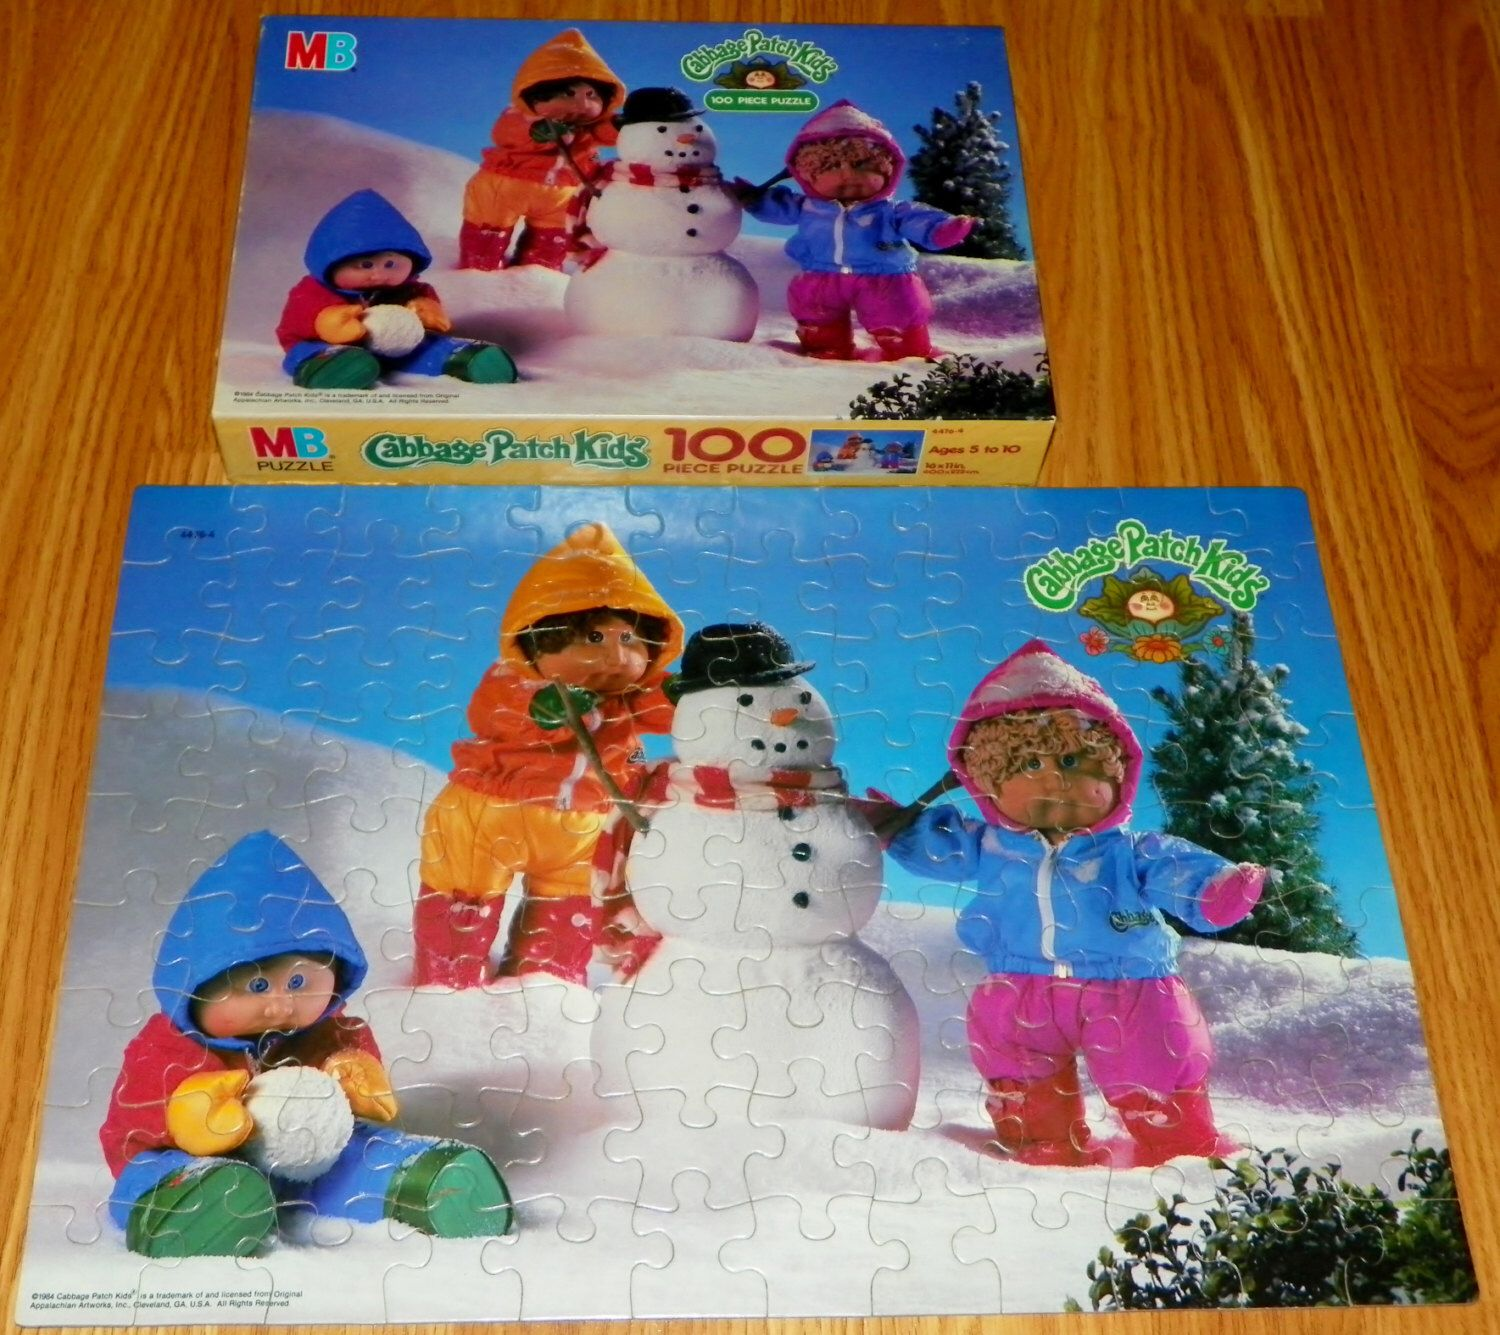 Vintage 1984 Cabbage Patch Kids 100 Piece Jigsaw Puzzle Complete Milton Bradley By Locococostreasures On Etsy Https Cabbage Patch Kids Patch Kids Kids Jigsaw